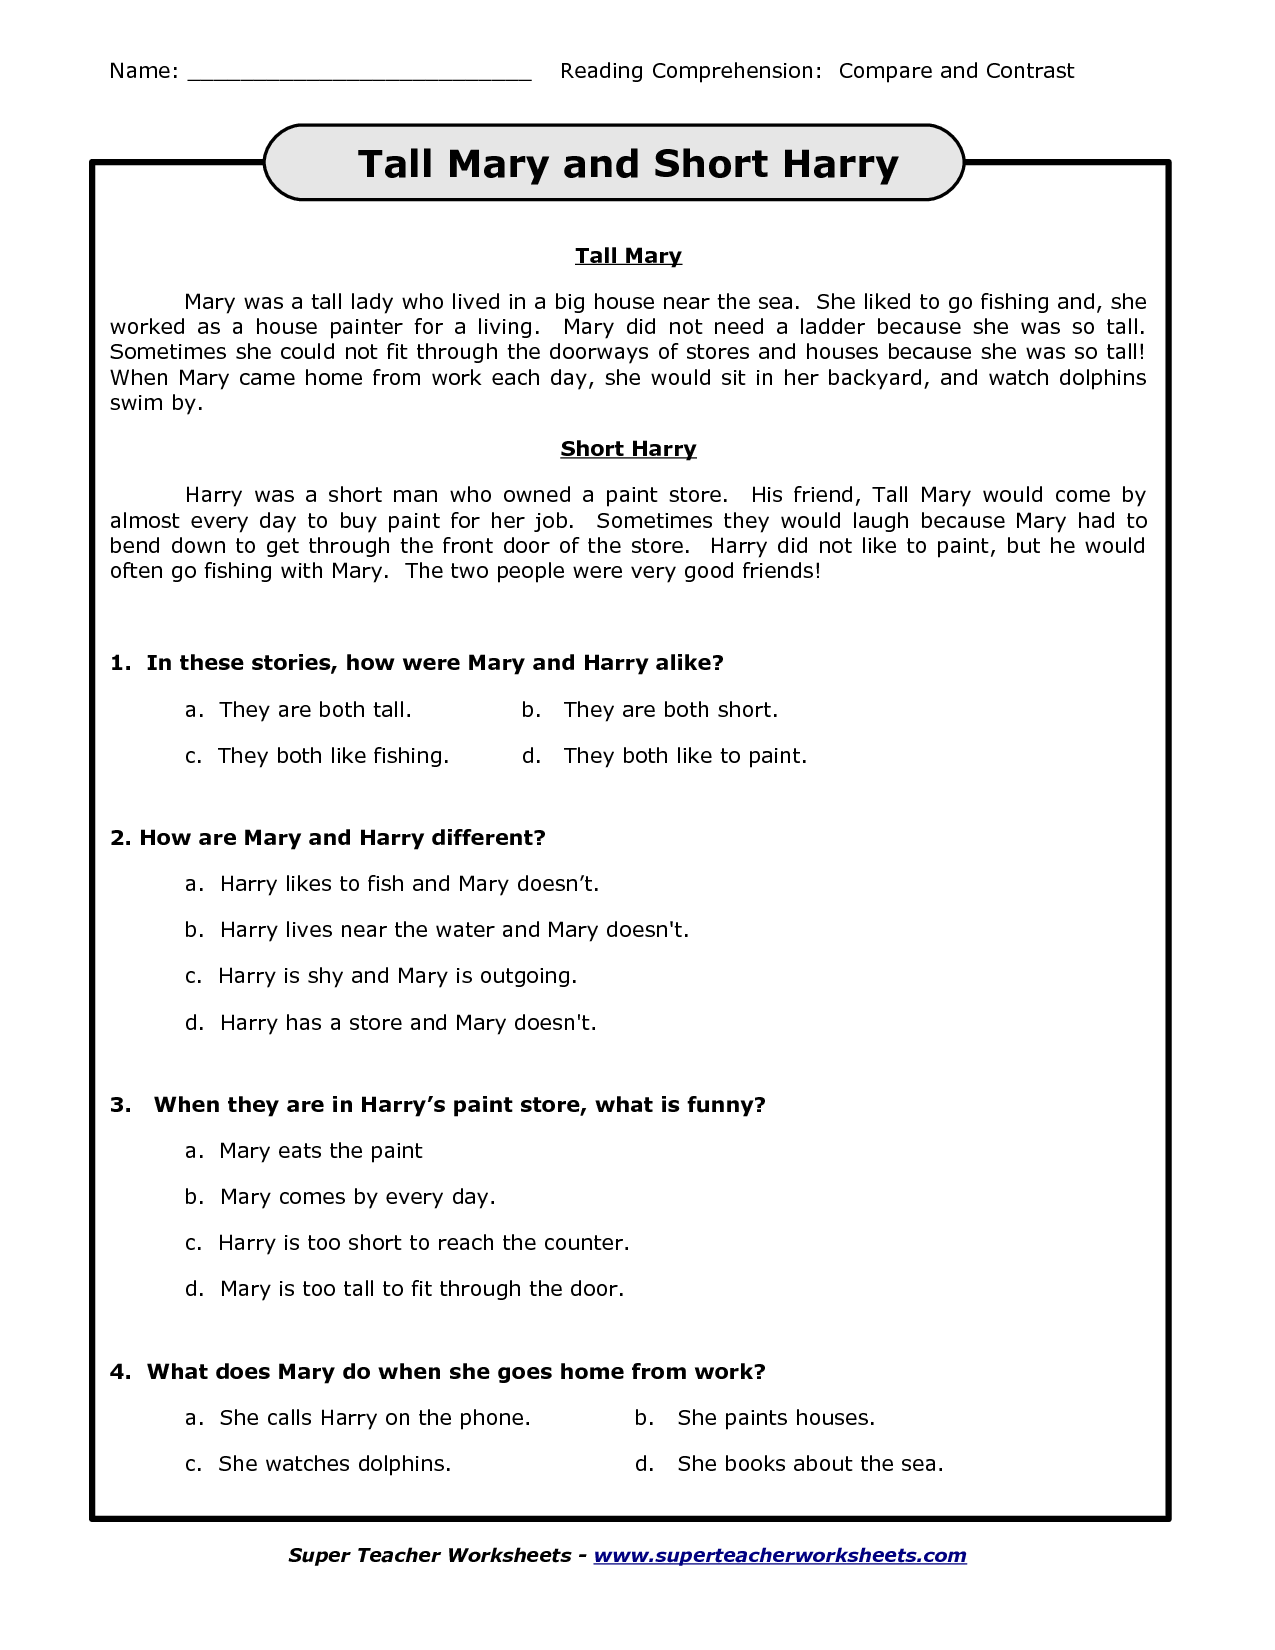 Search Results For Compare And Contrast Worksheets For